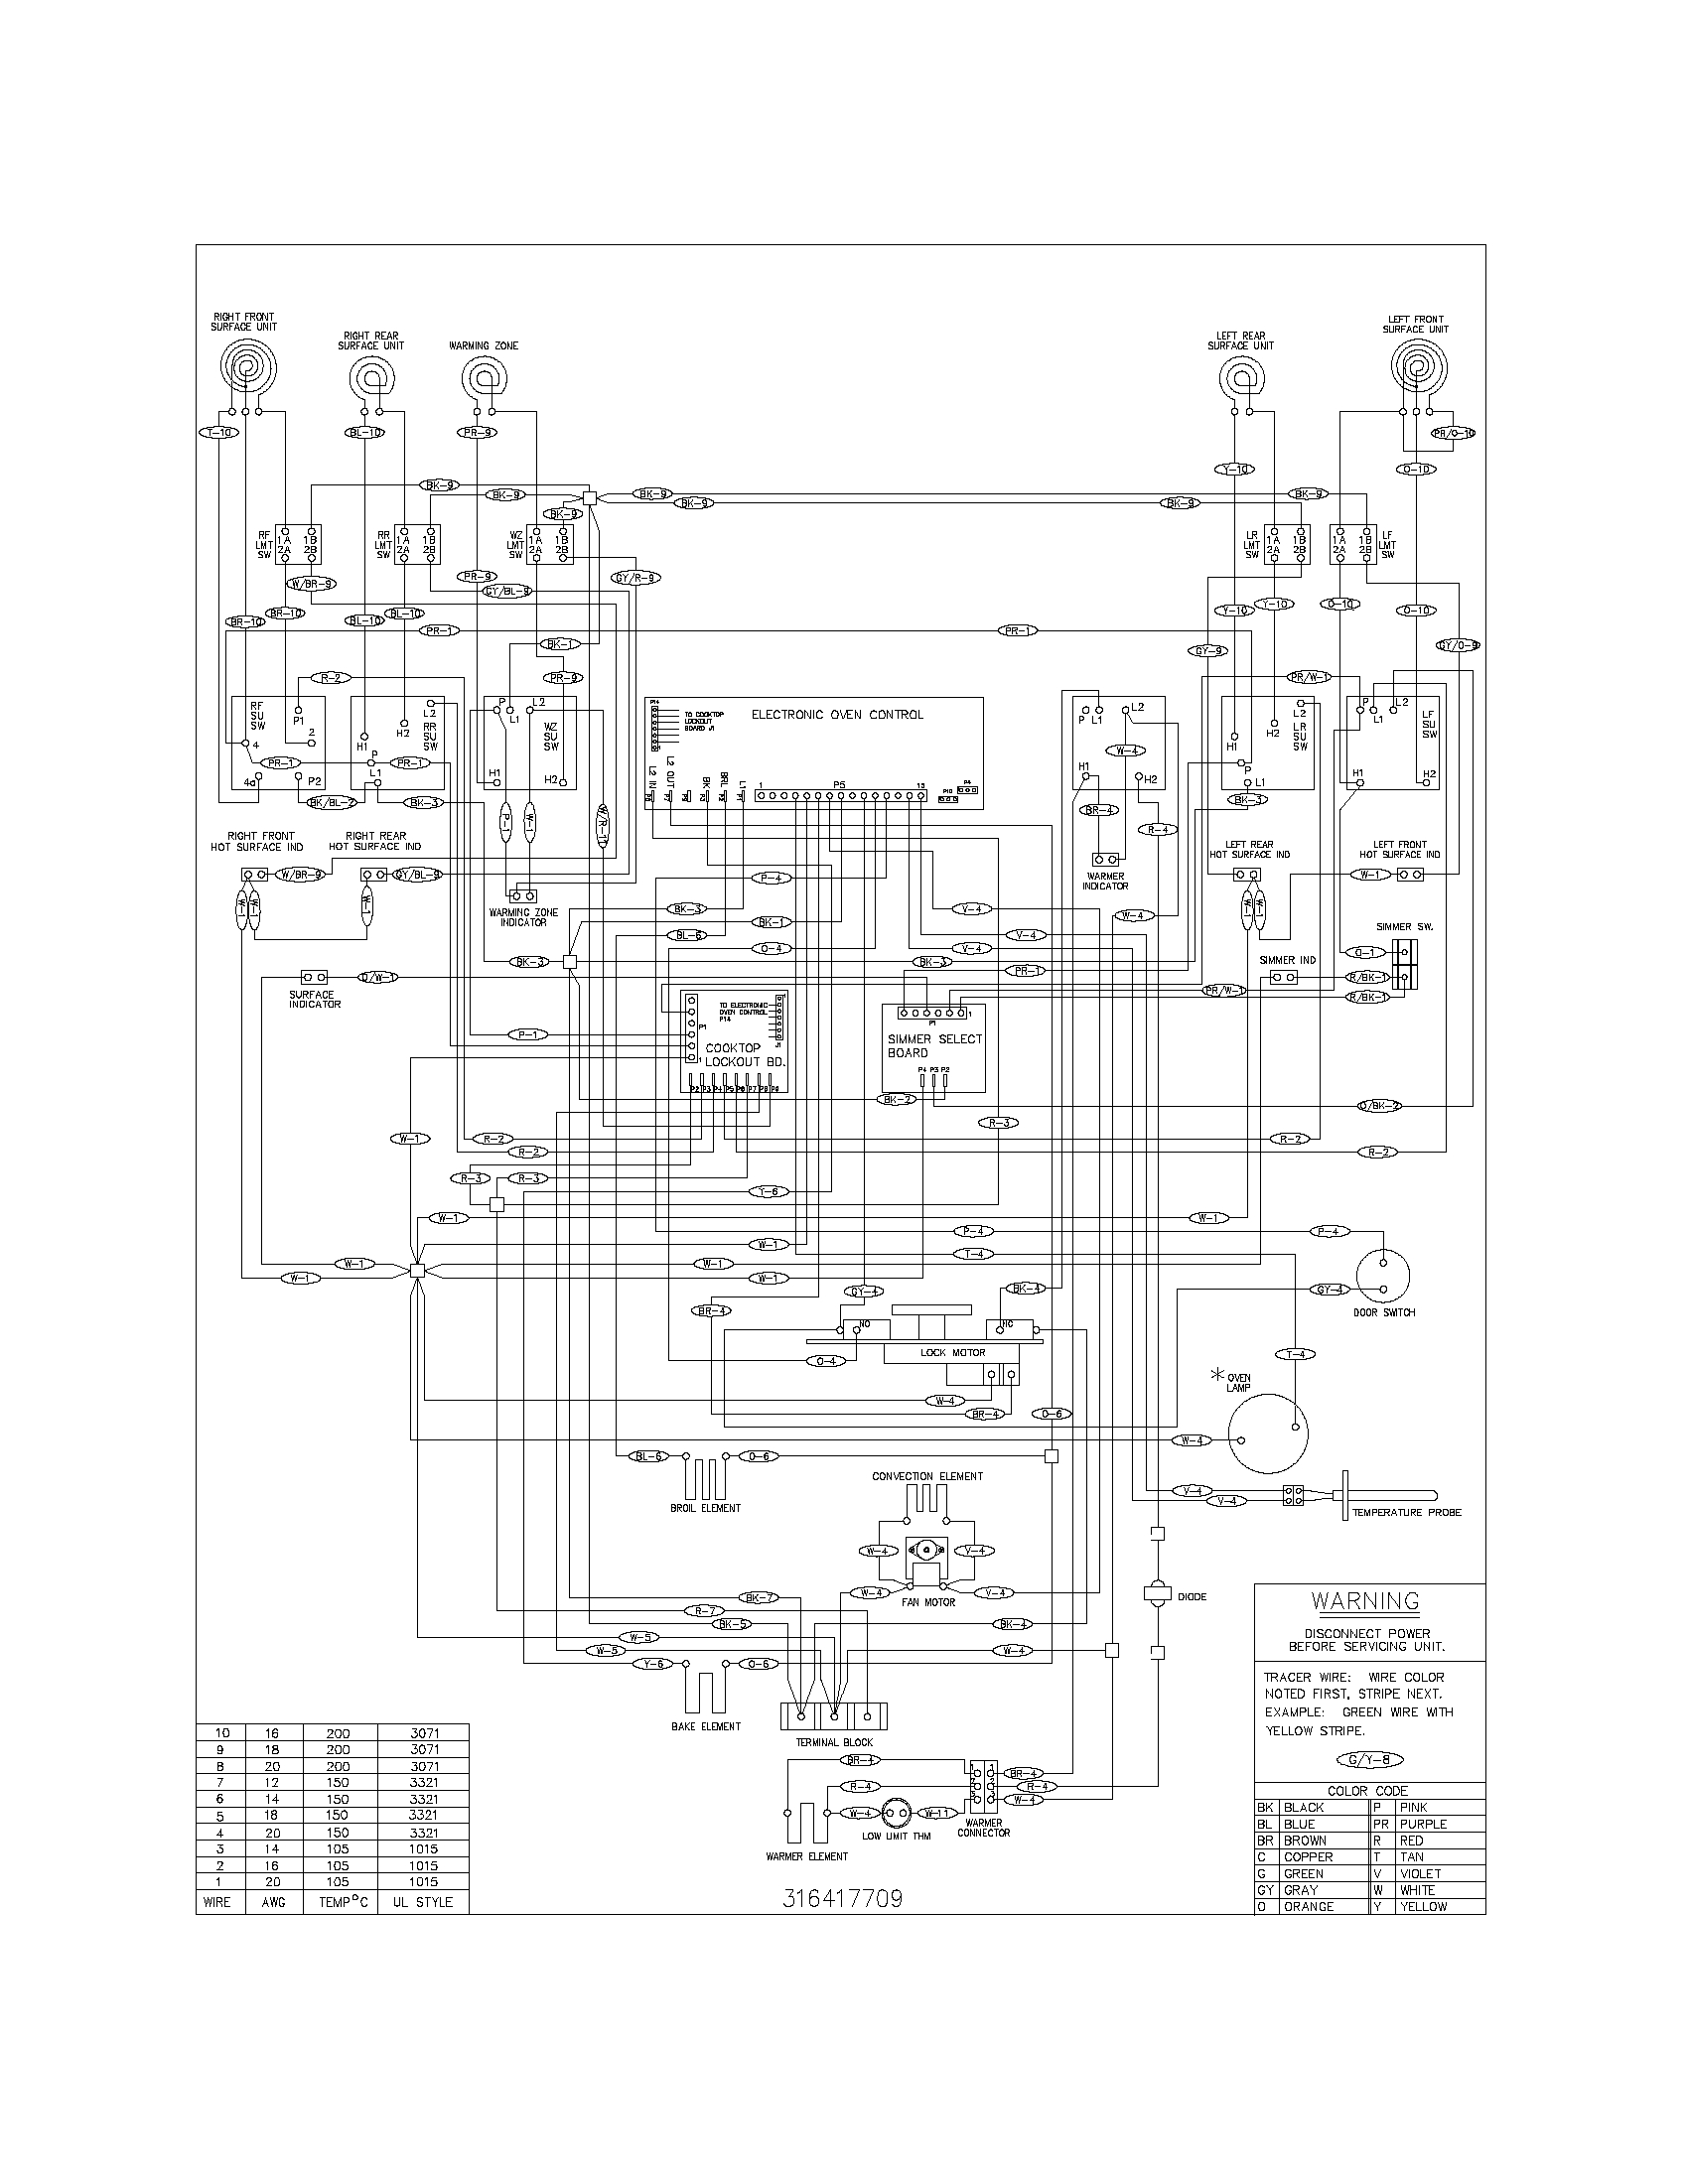 Dryer Wiring Diagram On Wiring Diagram For Kenmore Dryer Hookup